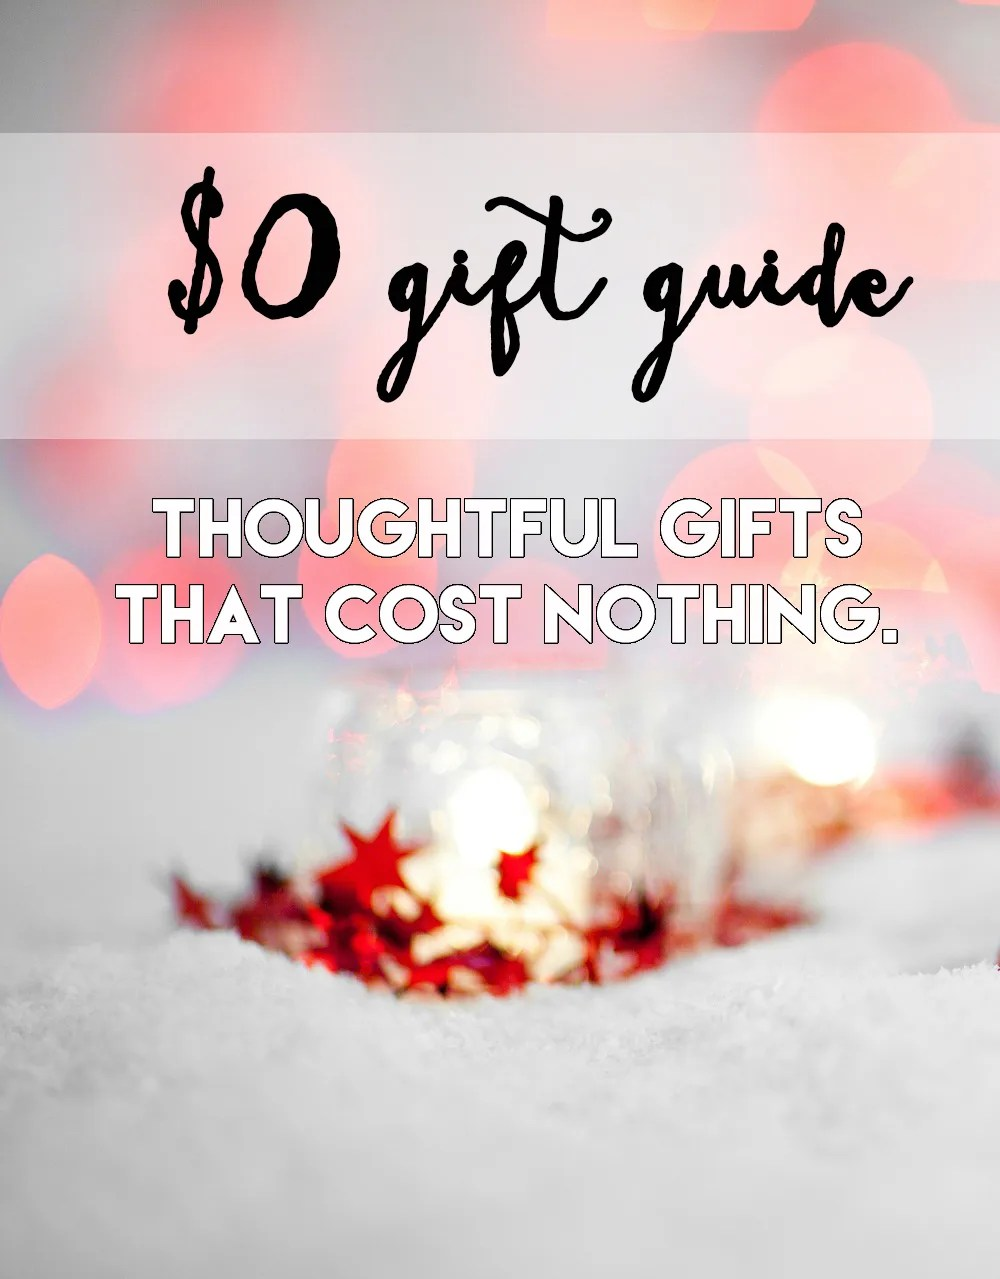 $0 gift guide // stephanieorefice.net